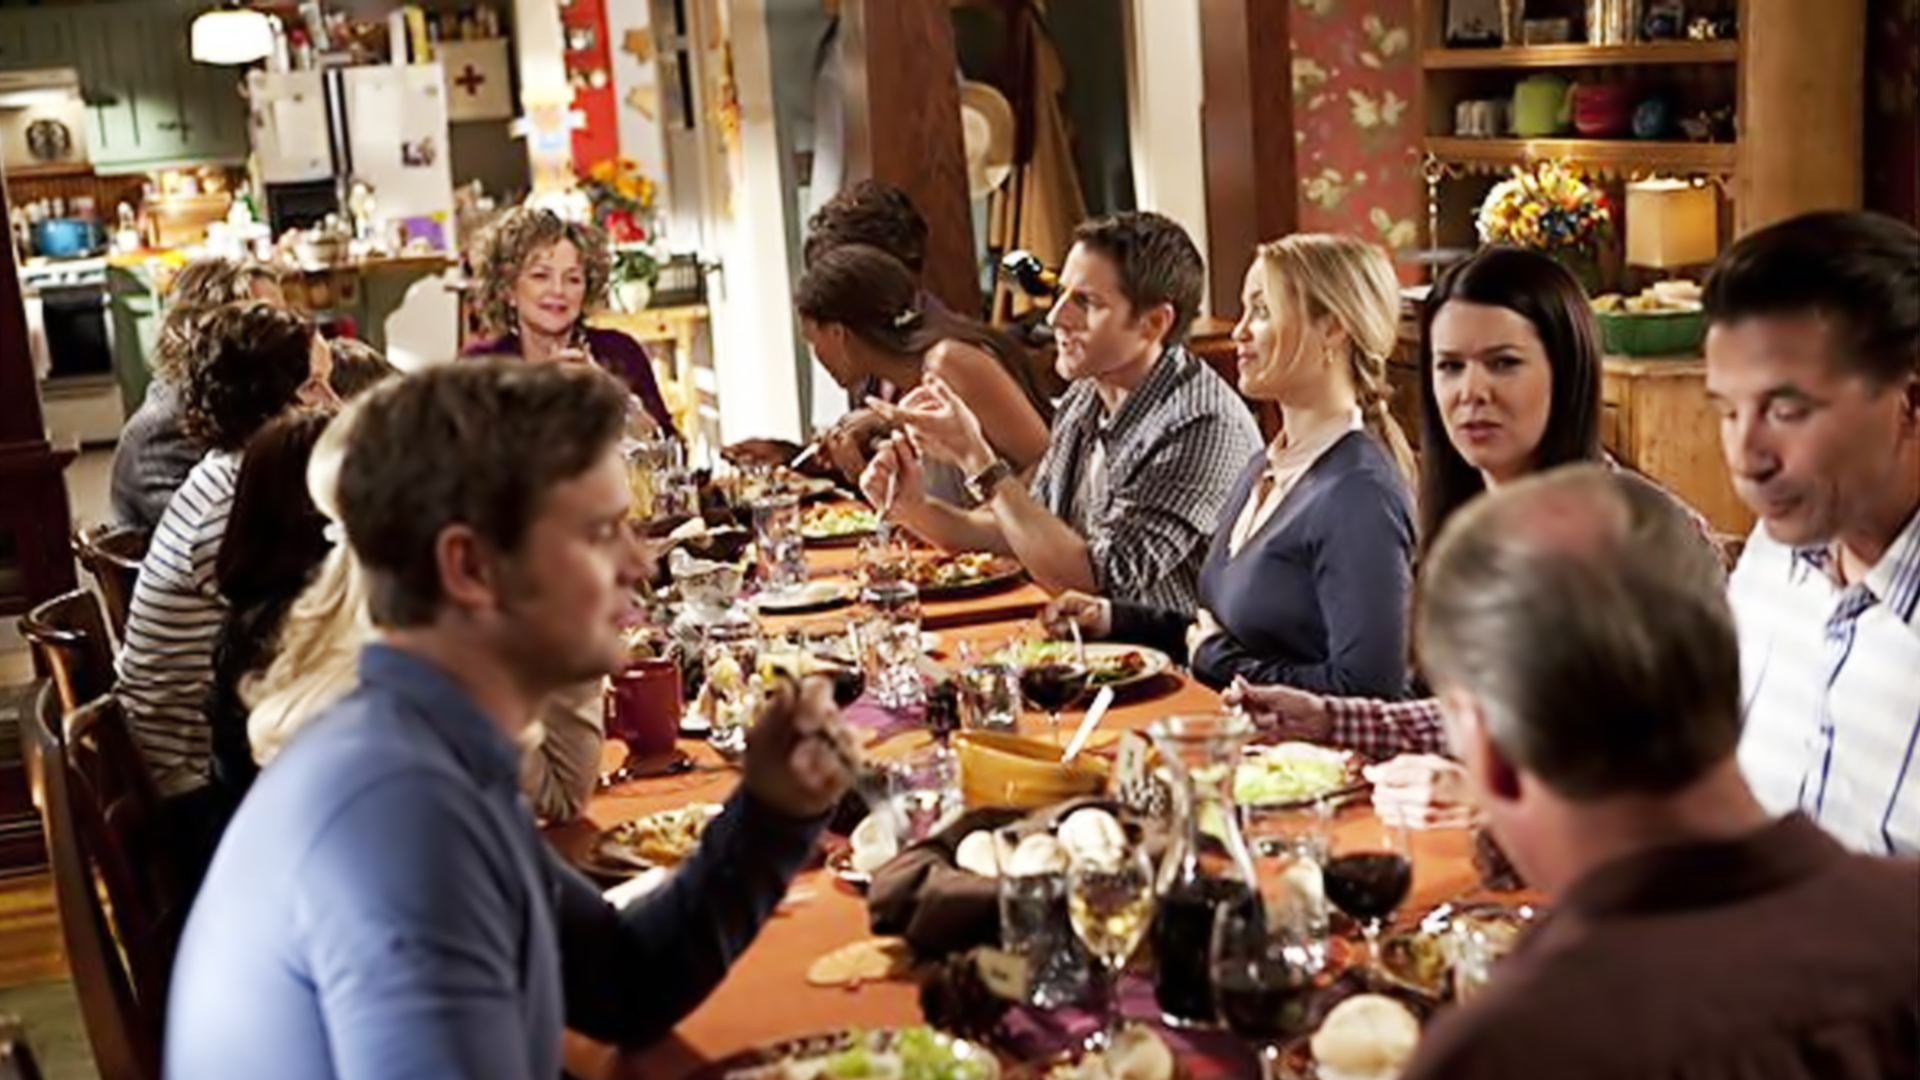 Thanksgiving Dining Room Decor According To Our Favourite TV Shows 4